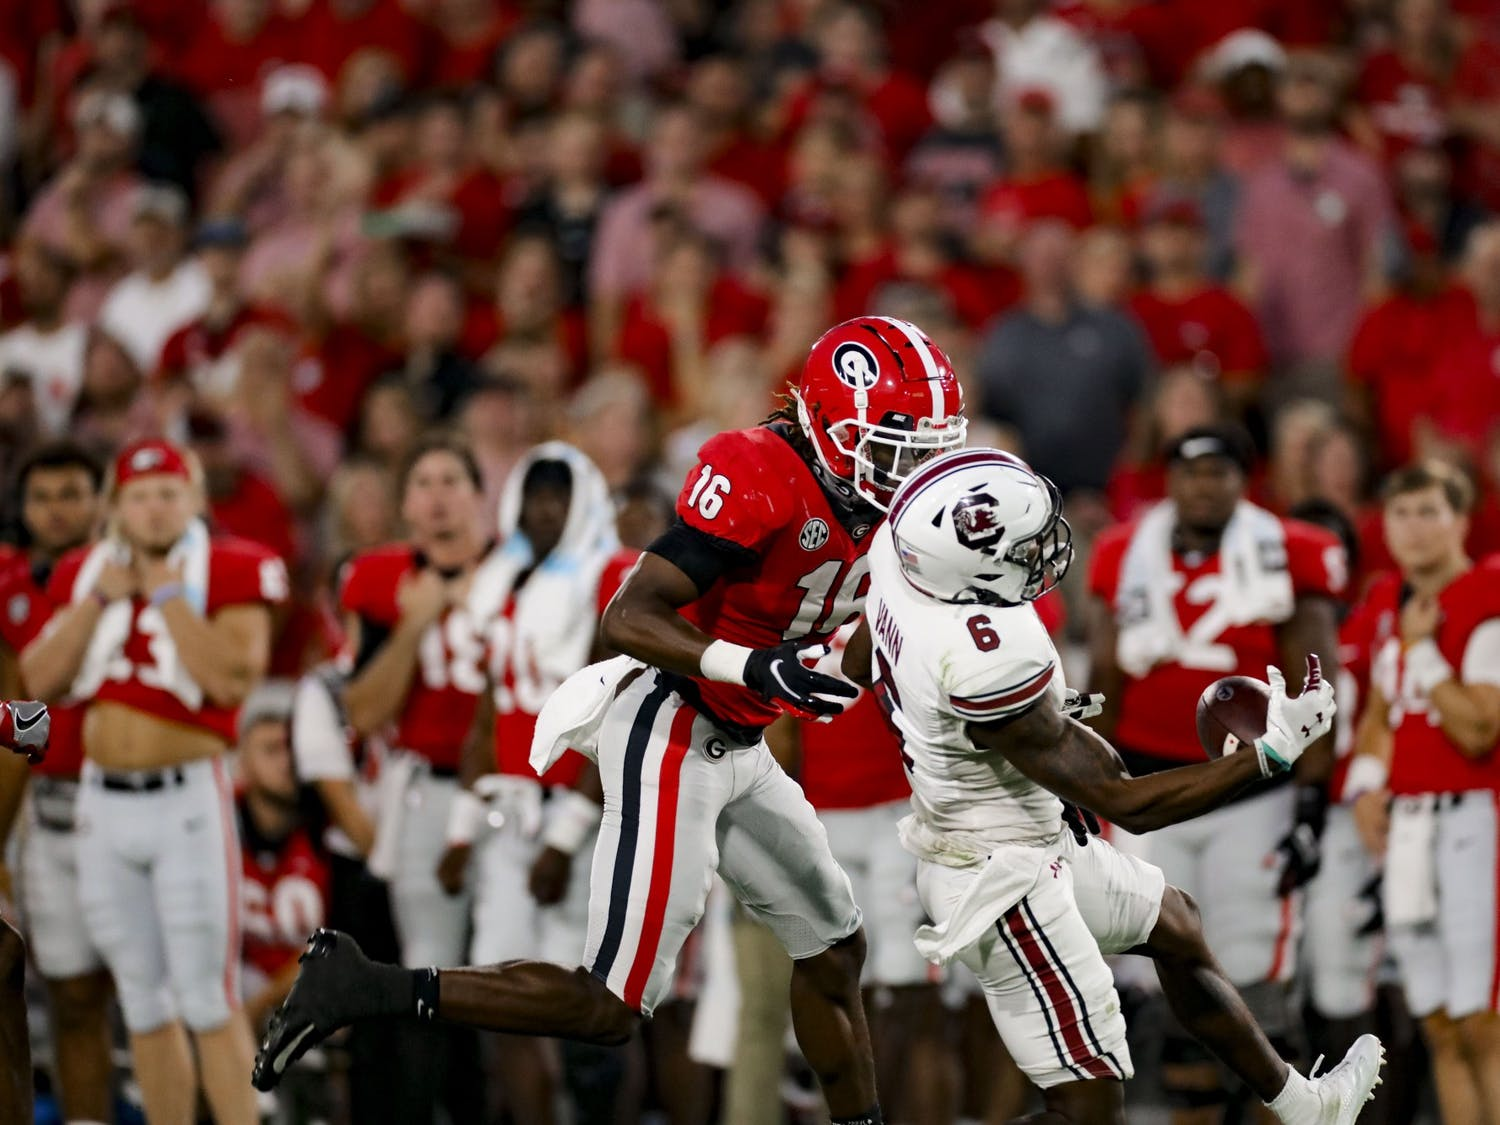 Senior wide receiver Josh Vann catches a pass in South Carolina's game against Georgia on Sept. 18, 2021.